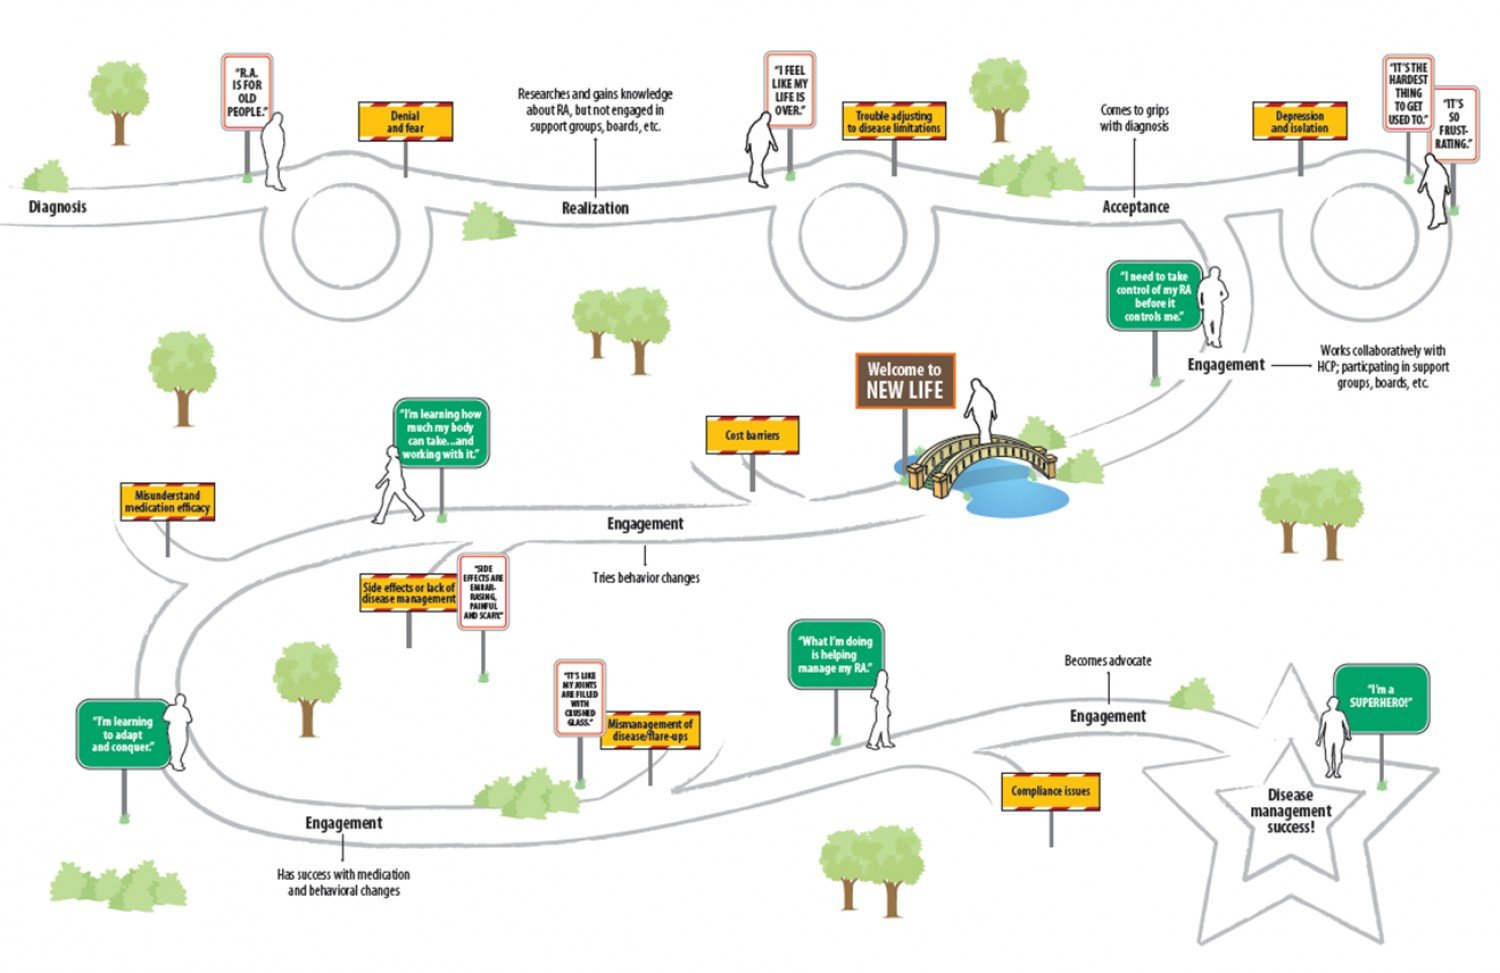 Rheumatoid Arthritis patient journey map